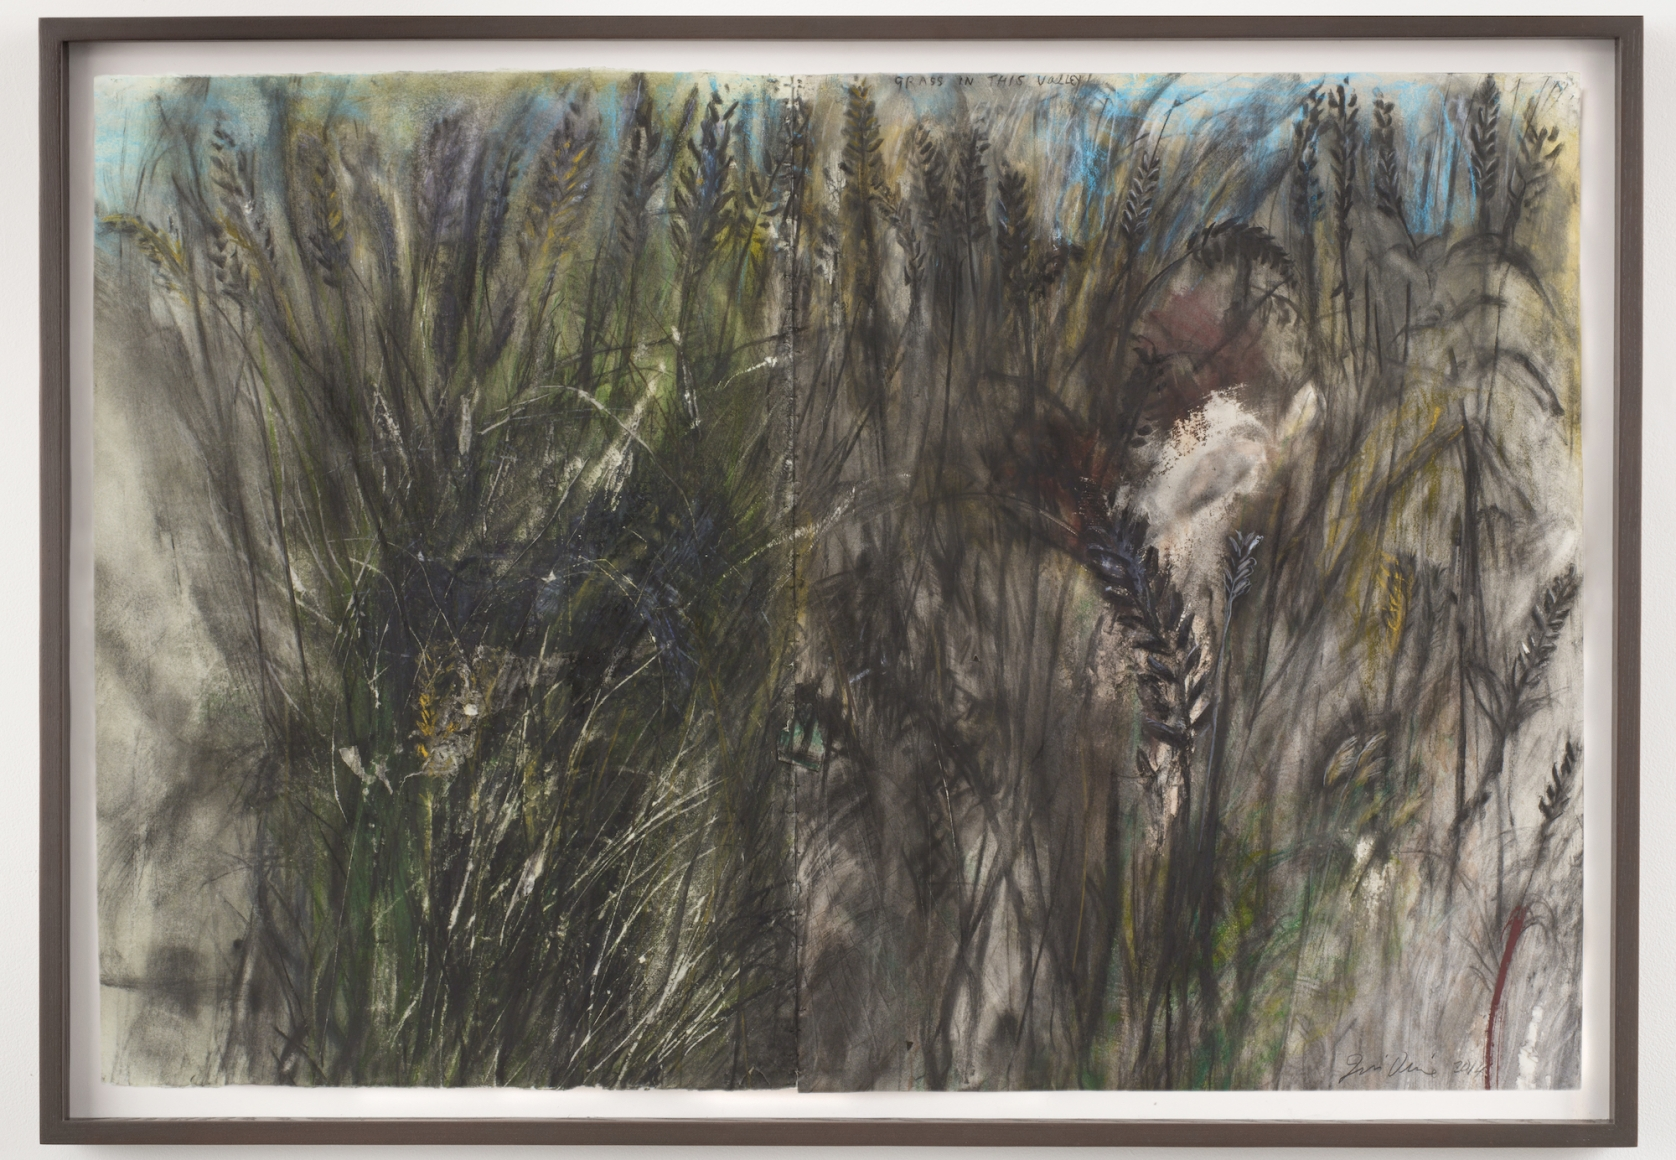 Grass in this Valley, 2014, Charcoal, pastel and watercolor on paper